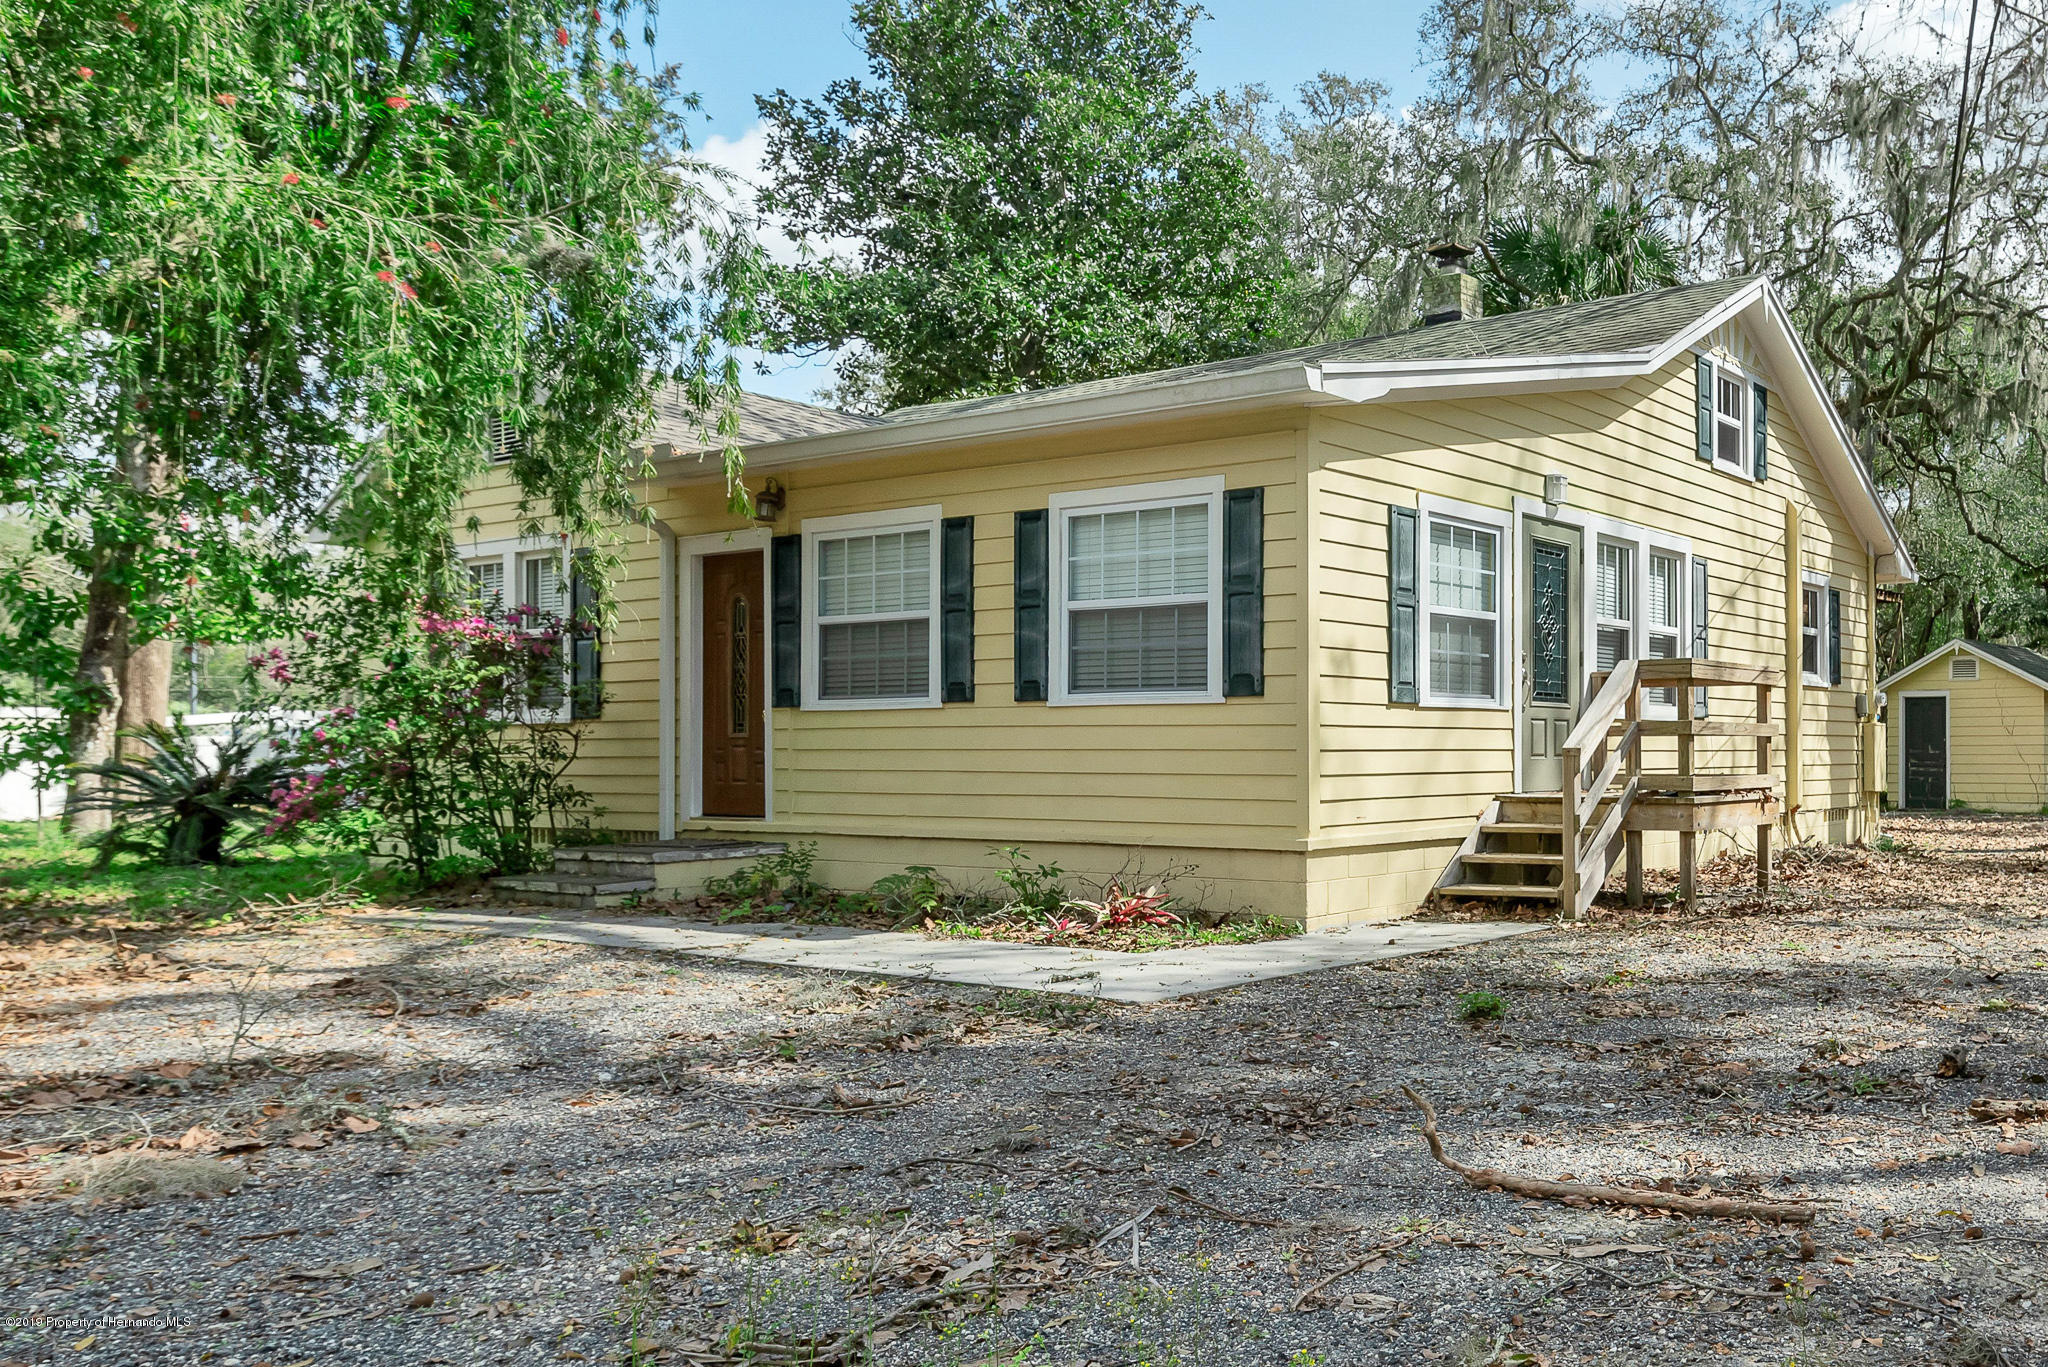 416 Broad Street, Brooksville, Florida 34604, 3 Bedrooms Bedrooms, ,2 BathroomsBathrooms,Residential,For Sale,Broad,2199003